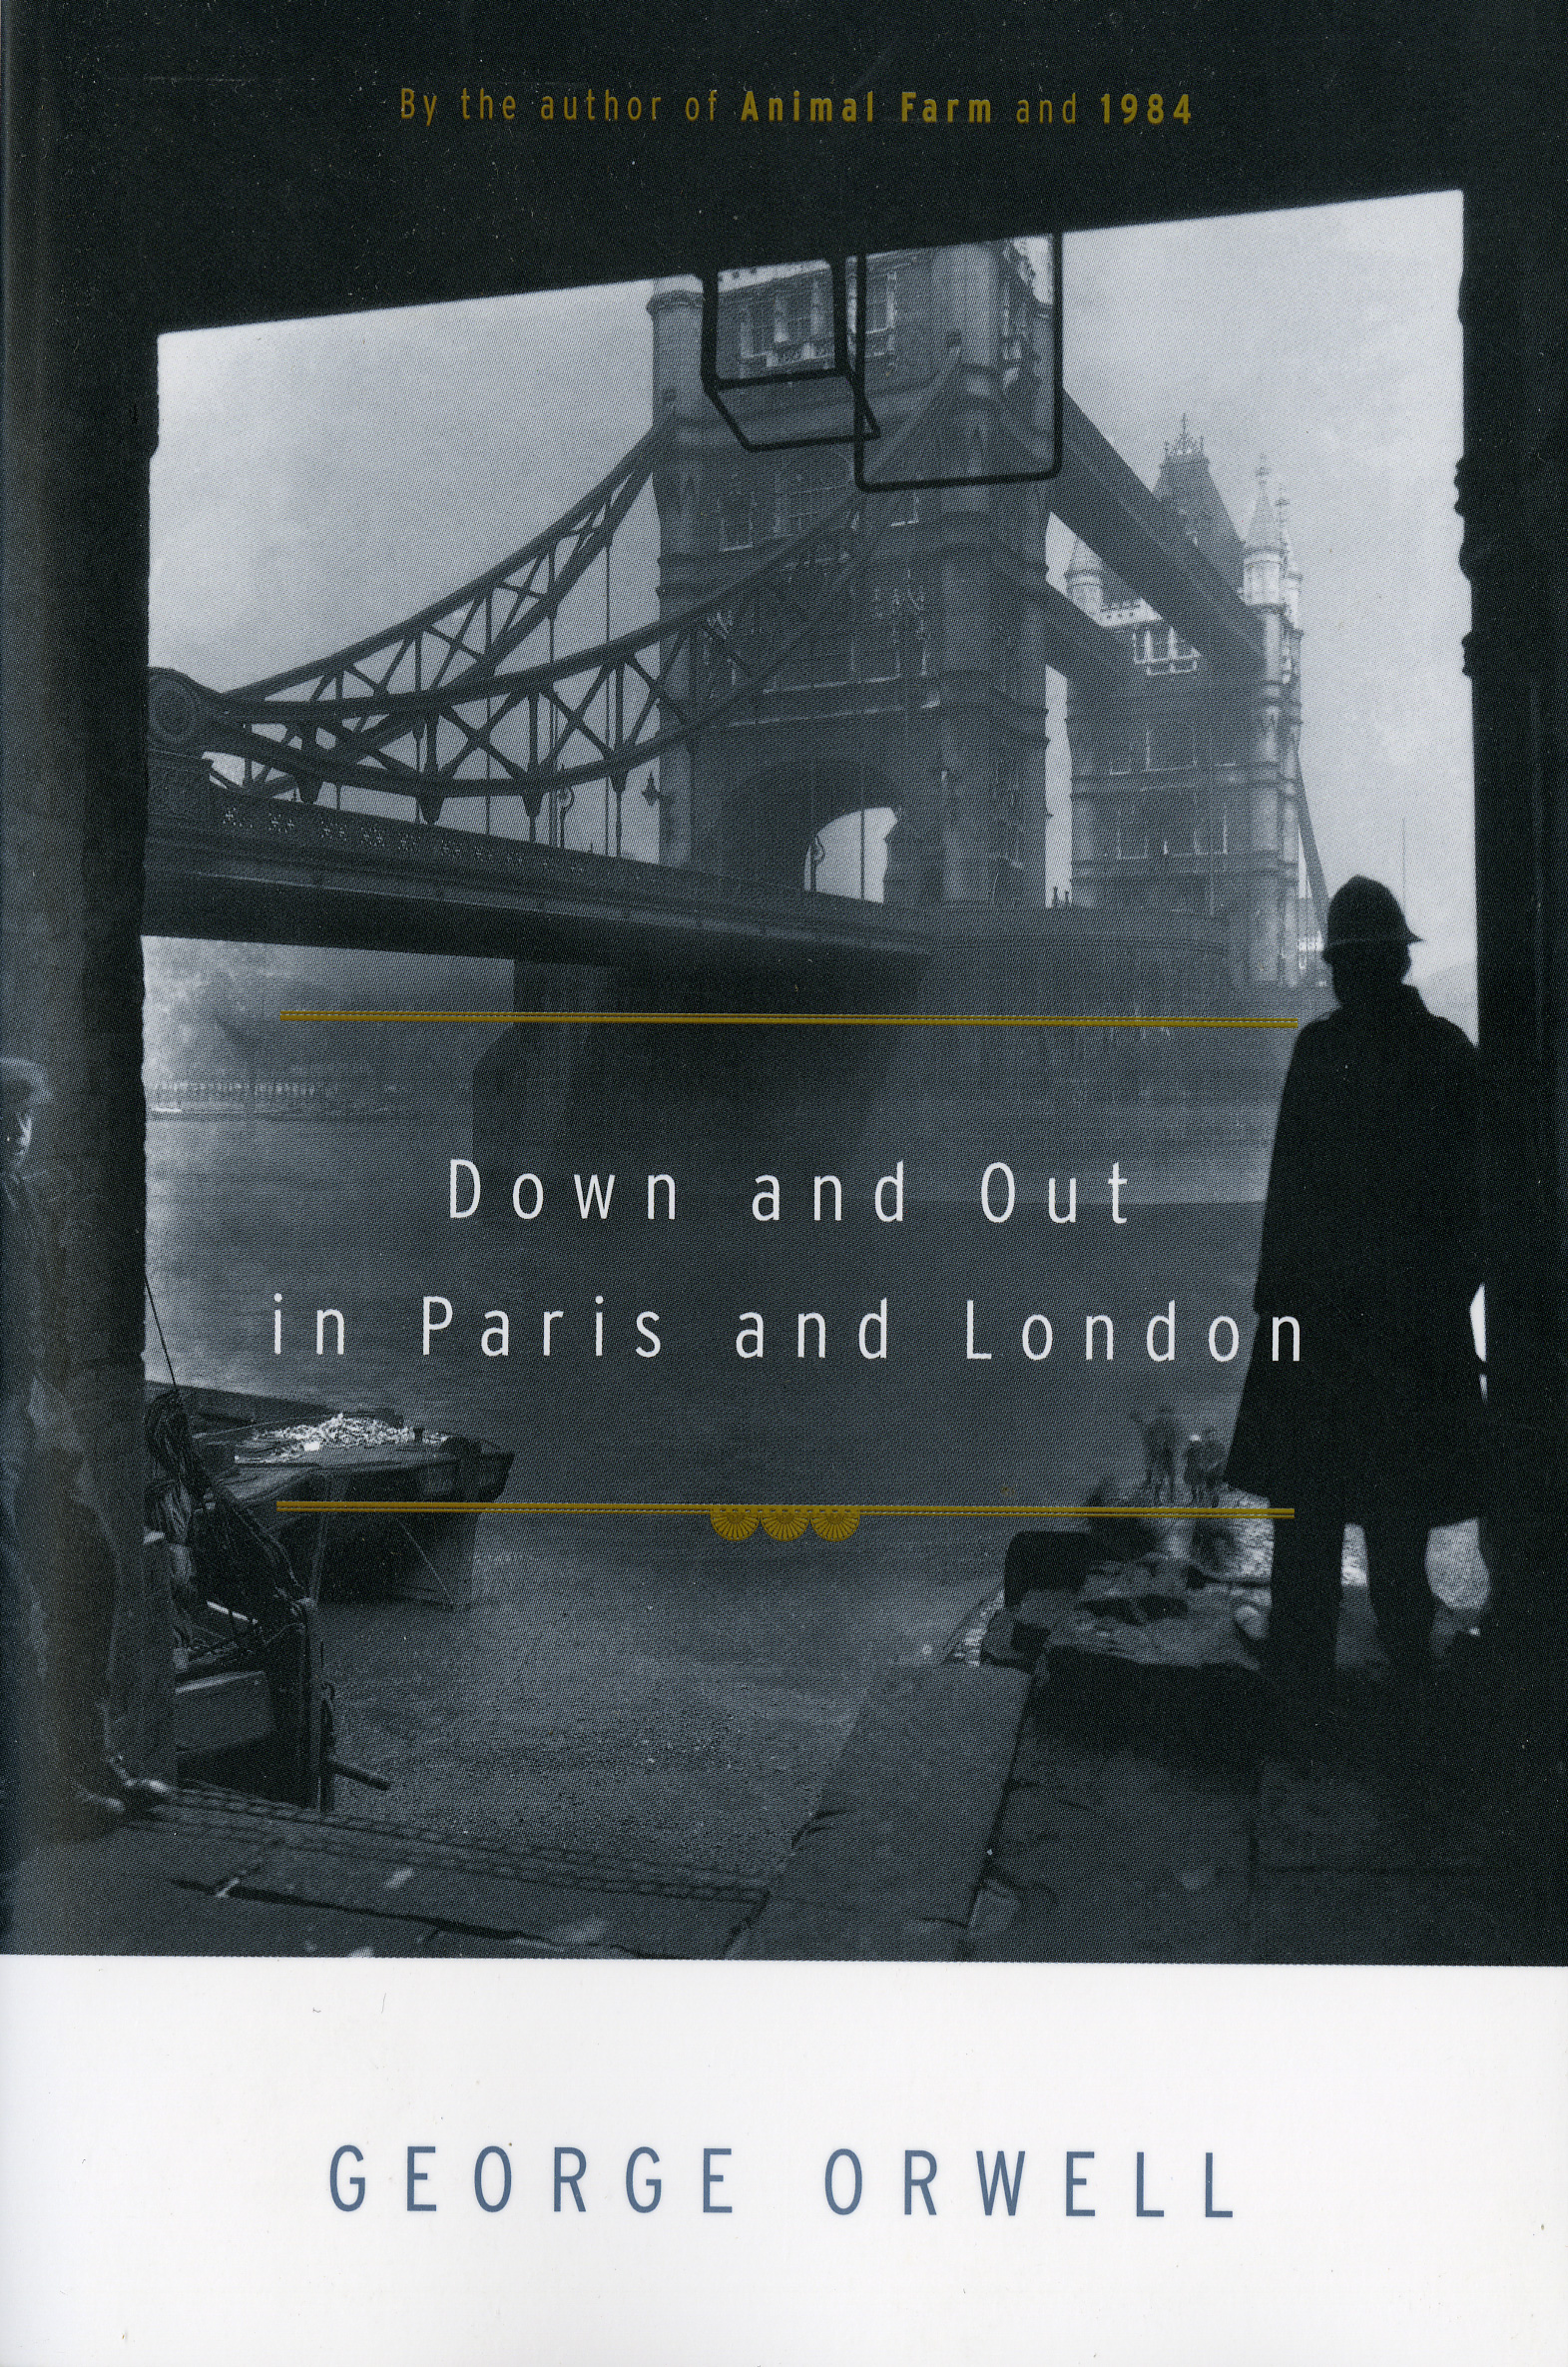 The cover of the book Down and Out in Paris and London